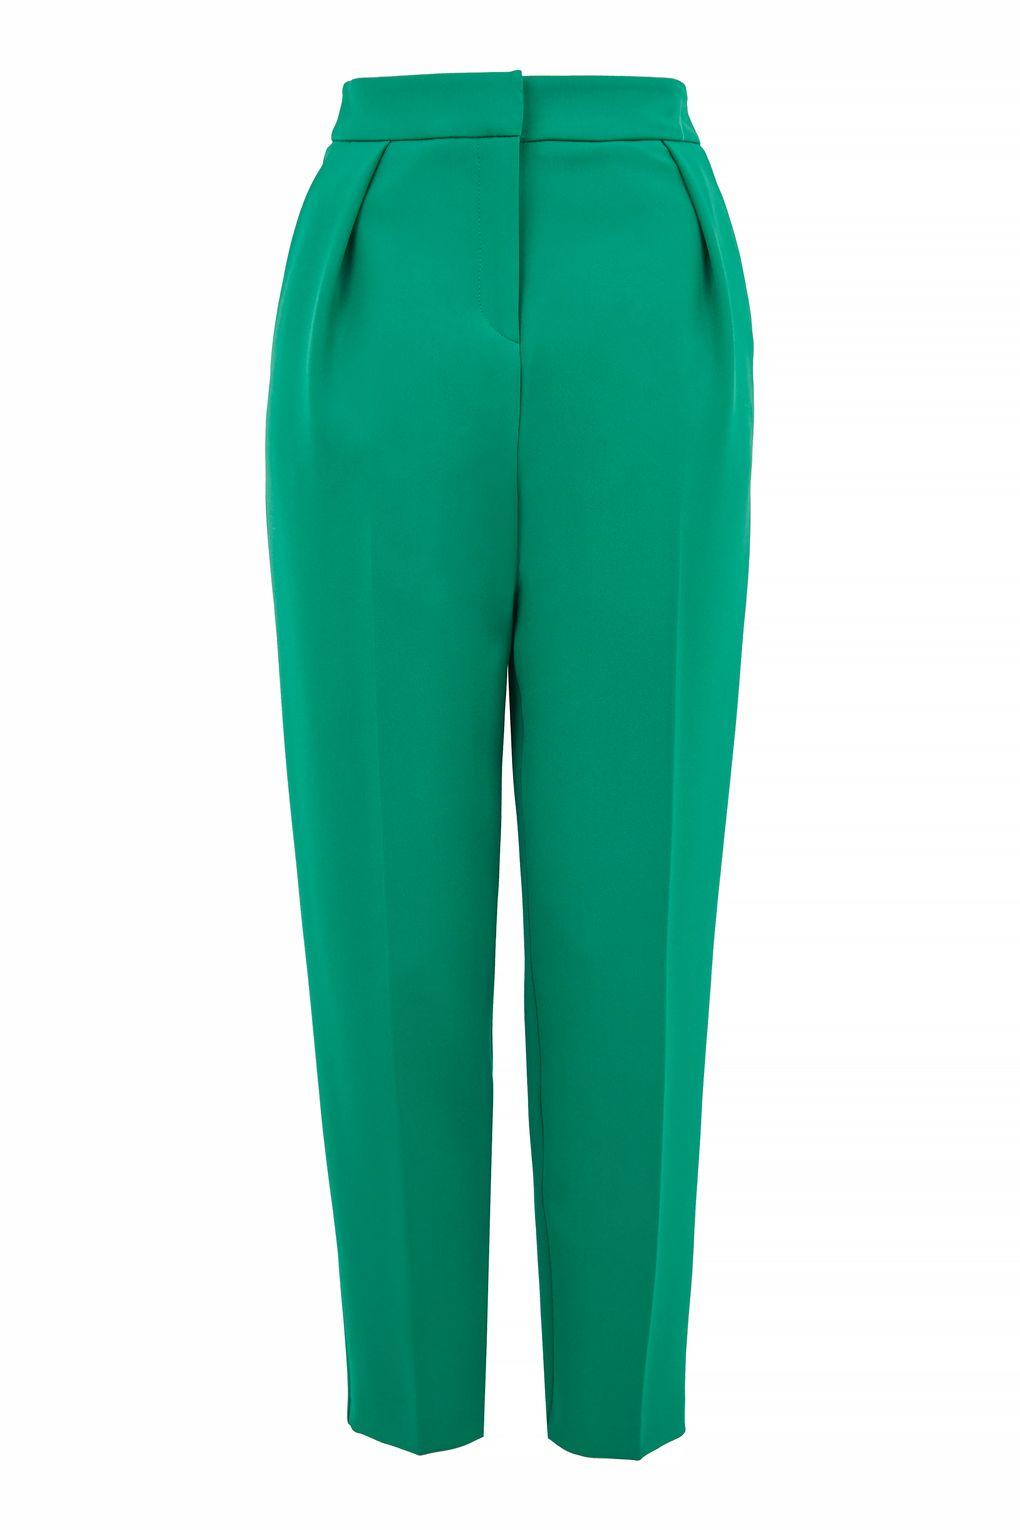 Topshop Peg Trousers In Green Lyst